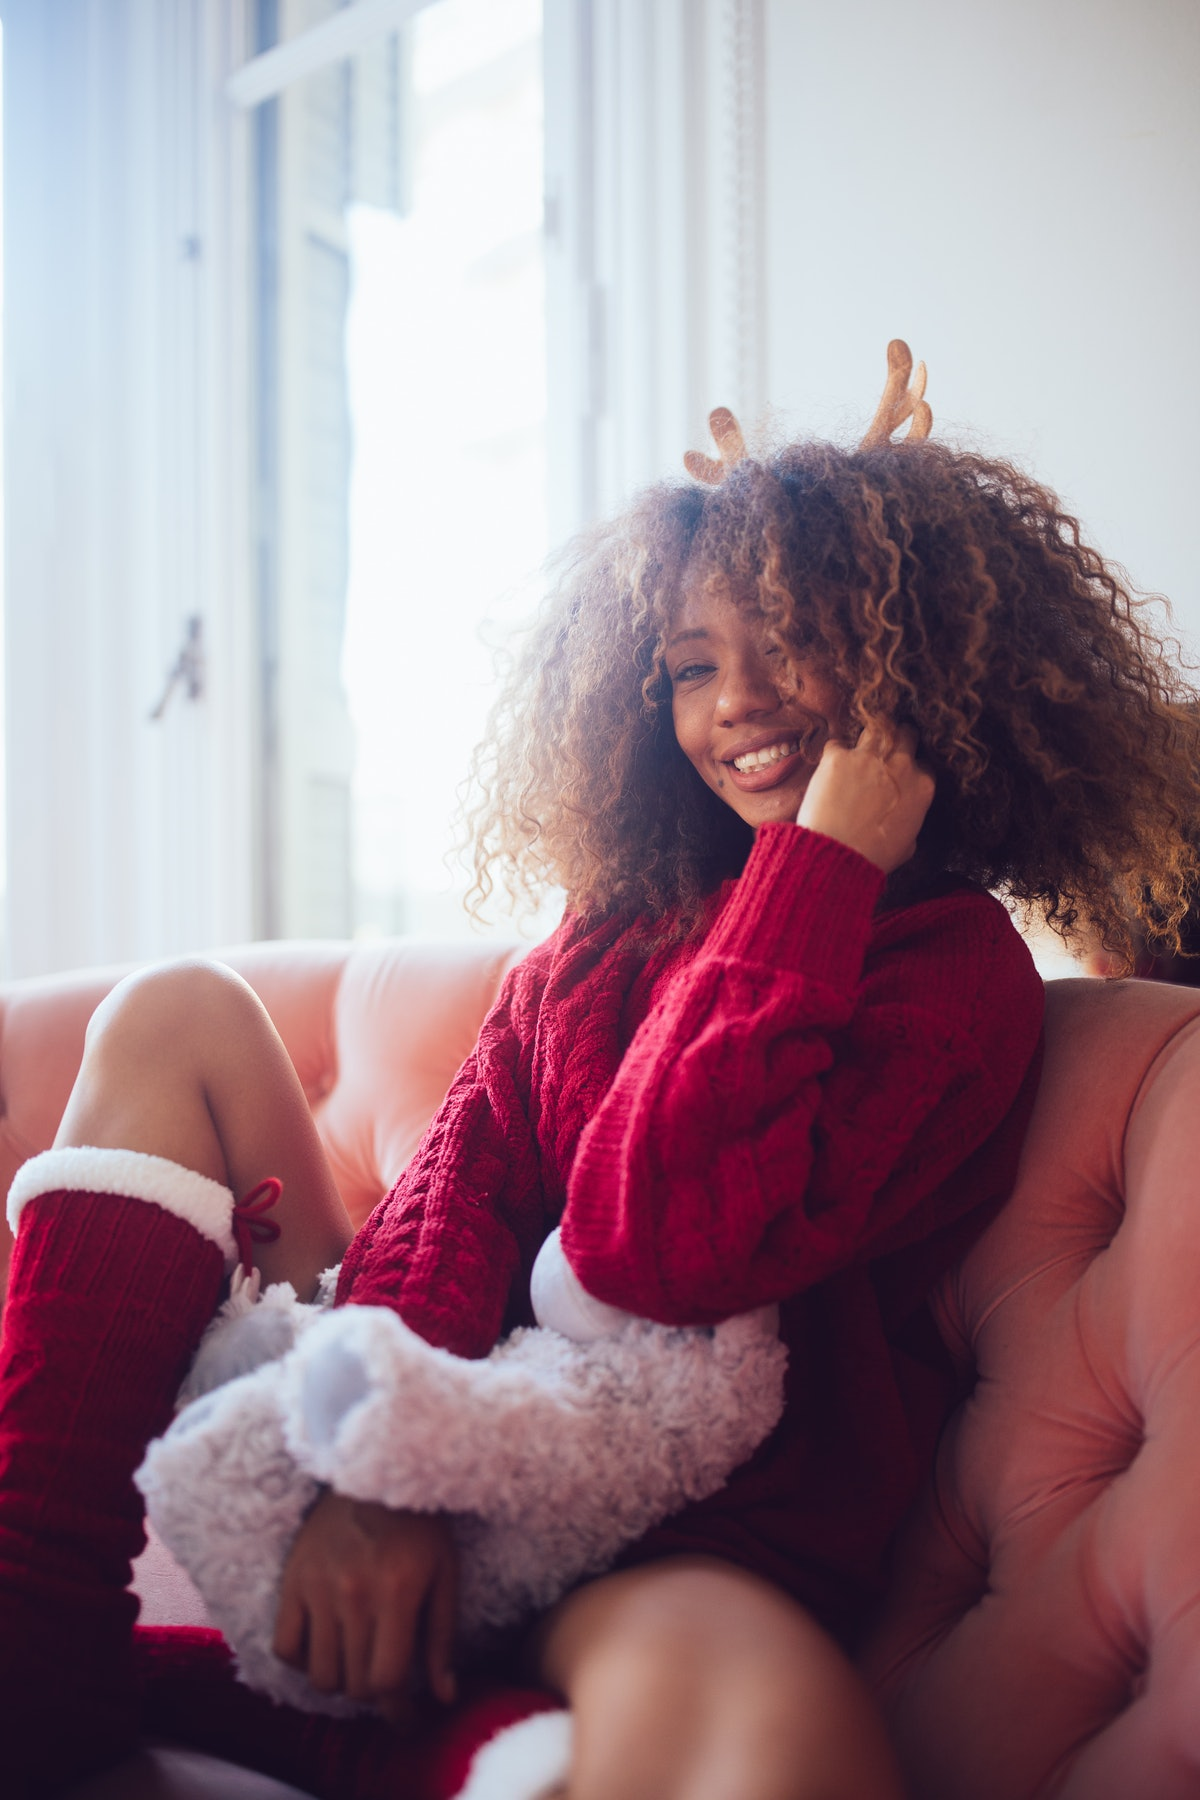 A young Black woman poses in a Christmas sweater and socks while attending a virtual Christmas party.